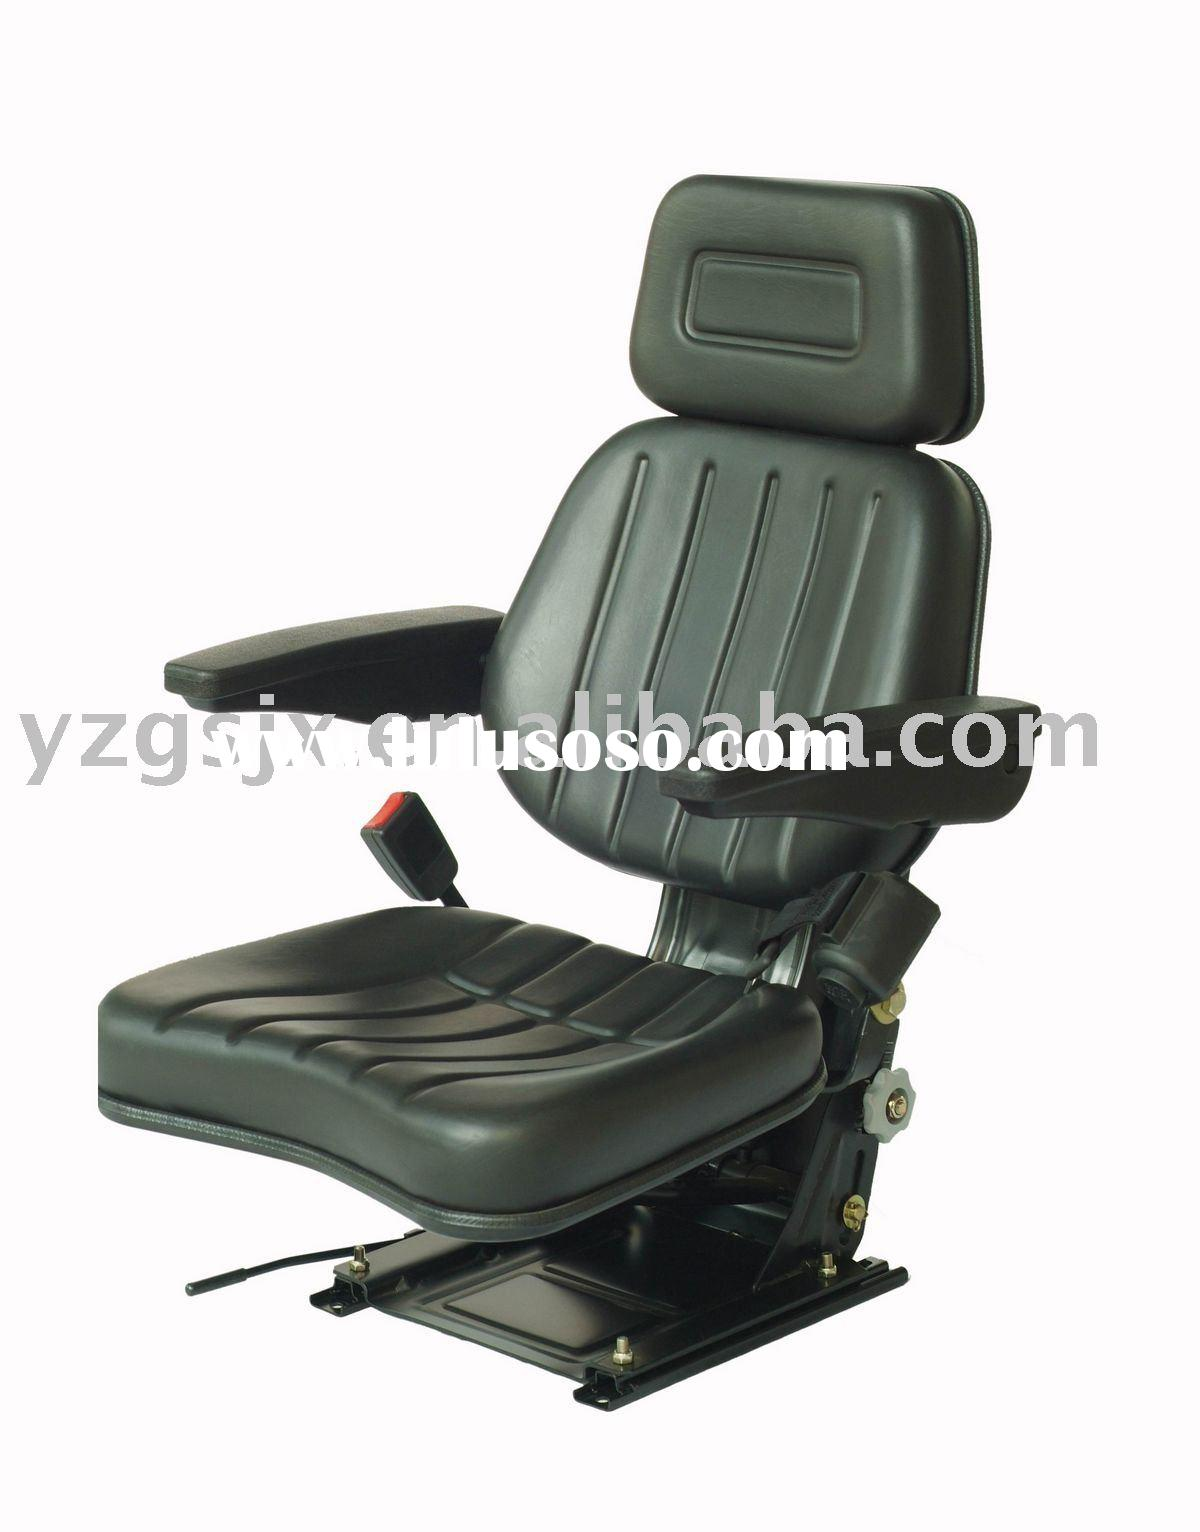 agricultural tractor seat